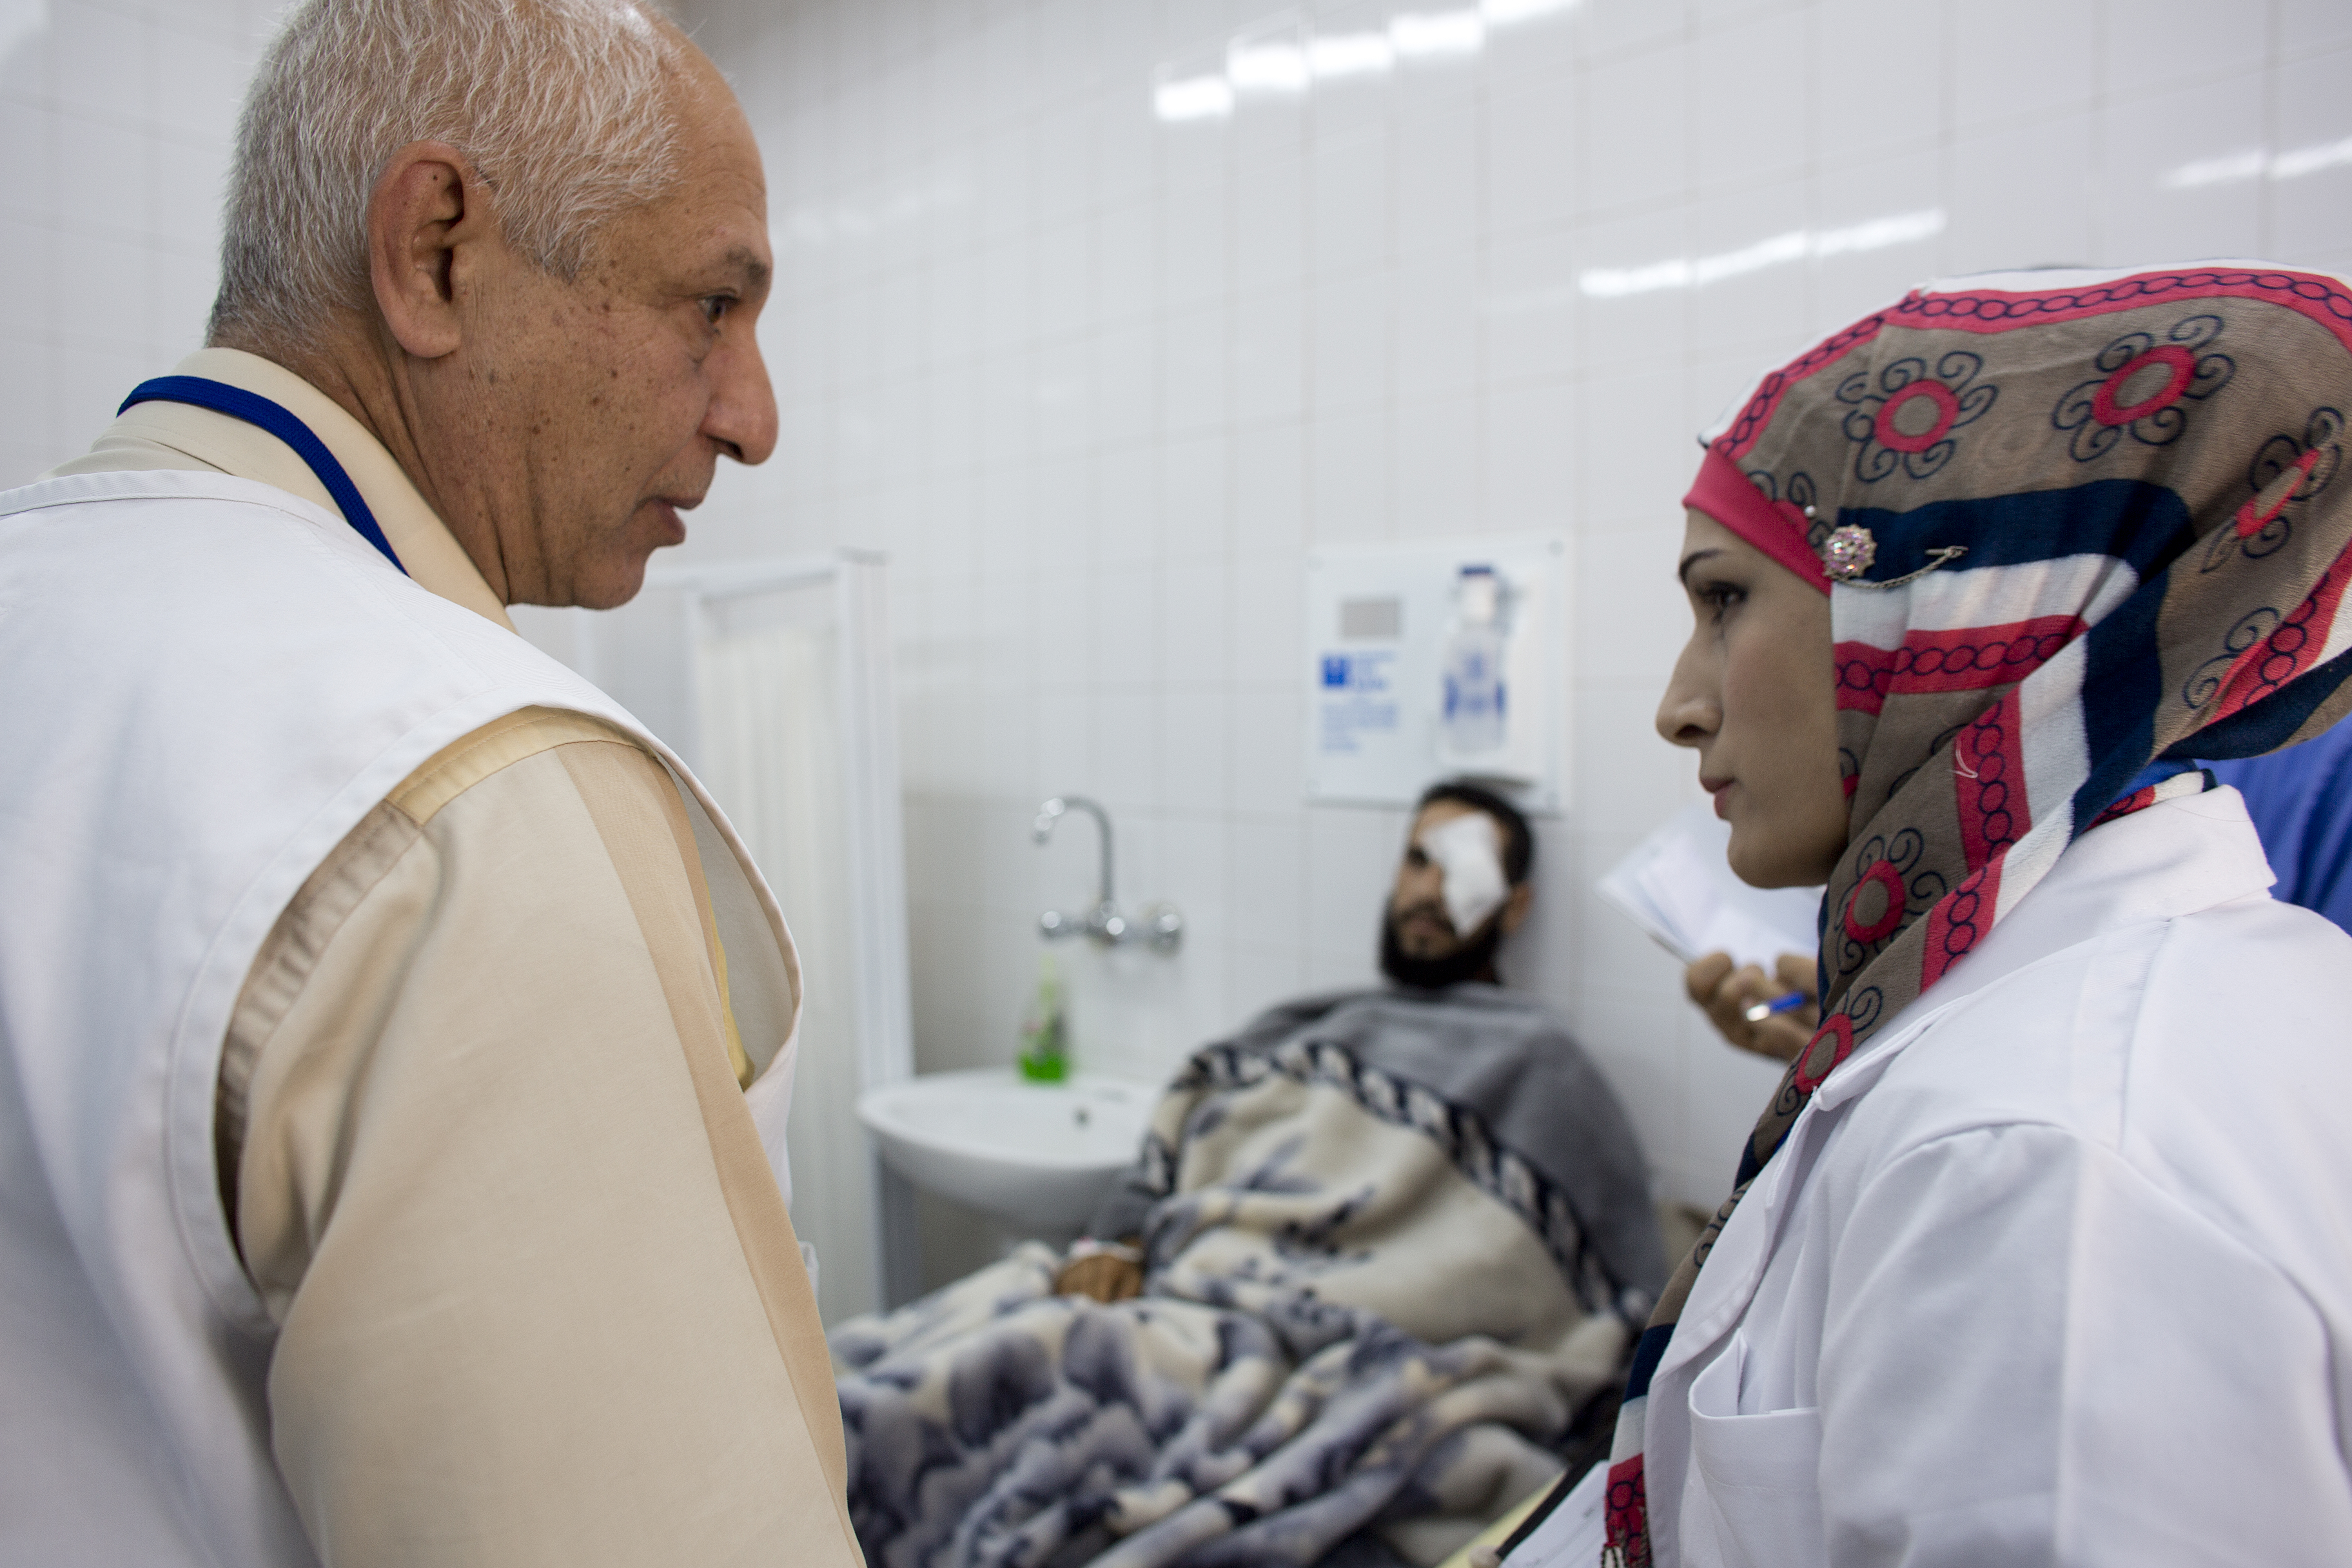 MSF staff working in the Ramtha hospital in Jordan, where war wounded patients from Syria are being treated. Doctors Without Borders medical staff is doing rounds in the wards.